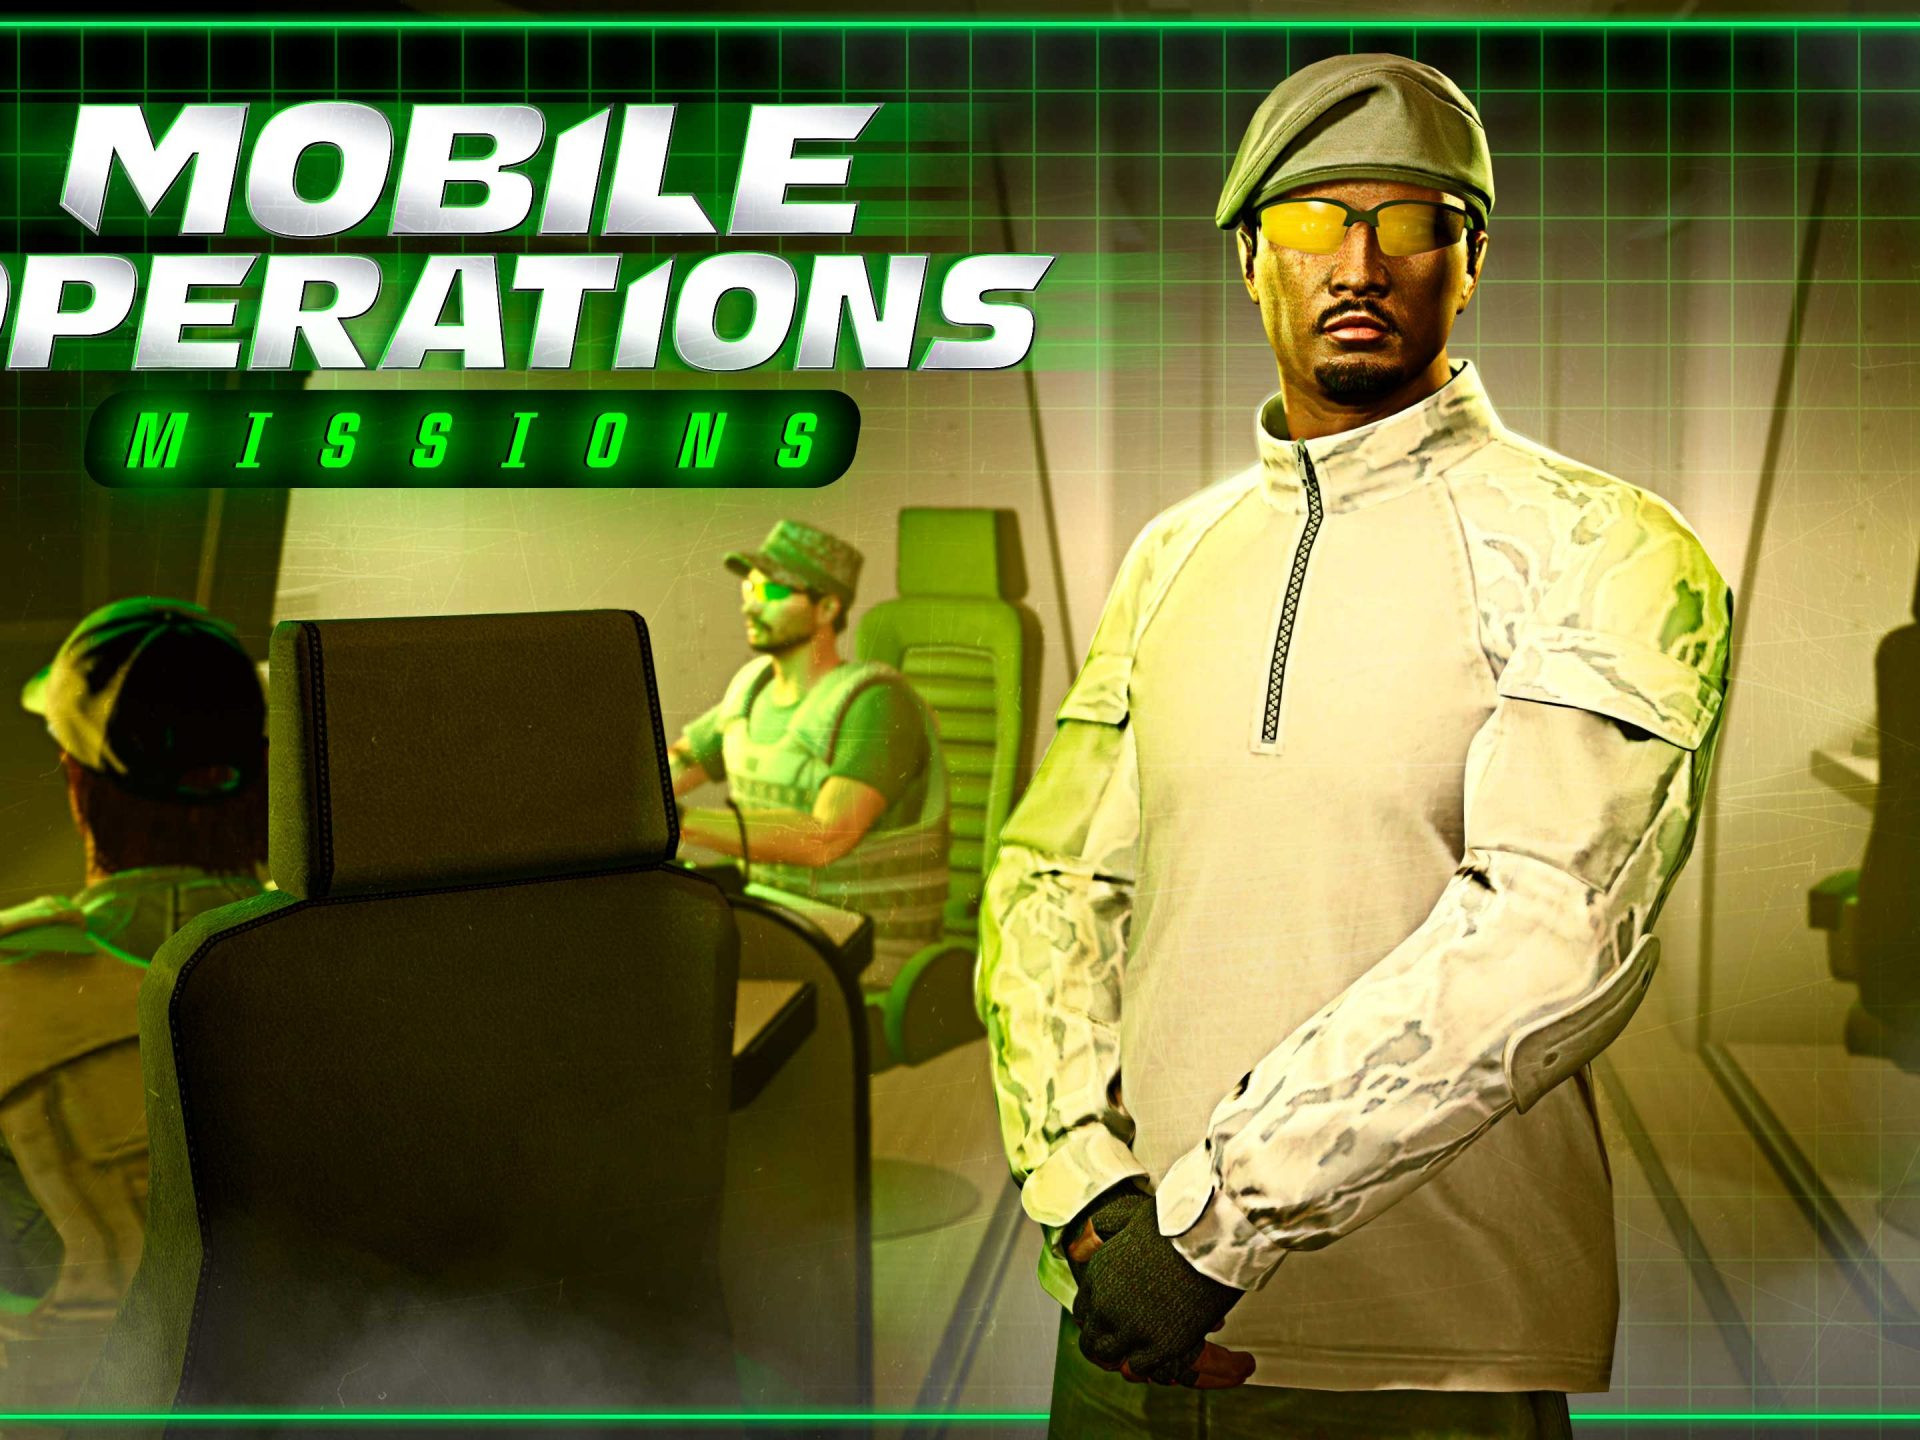 ban_missions-operations-mobile